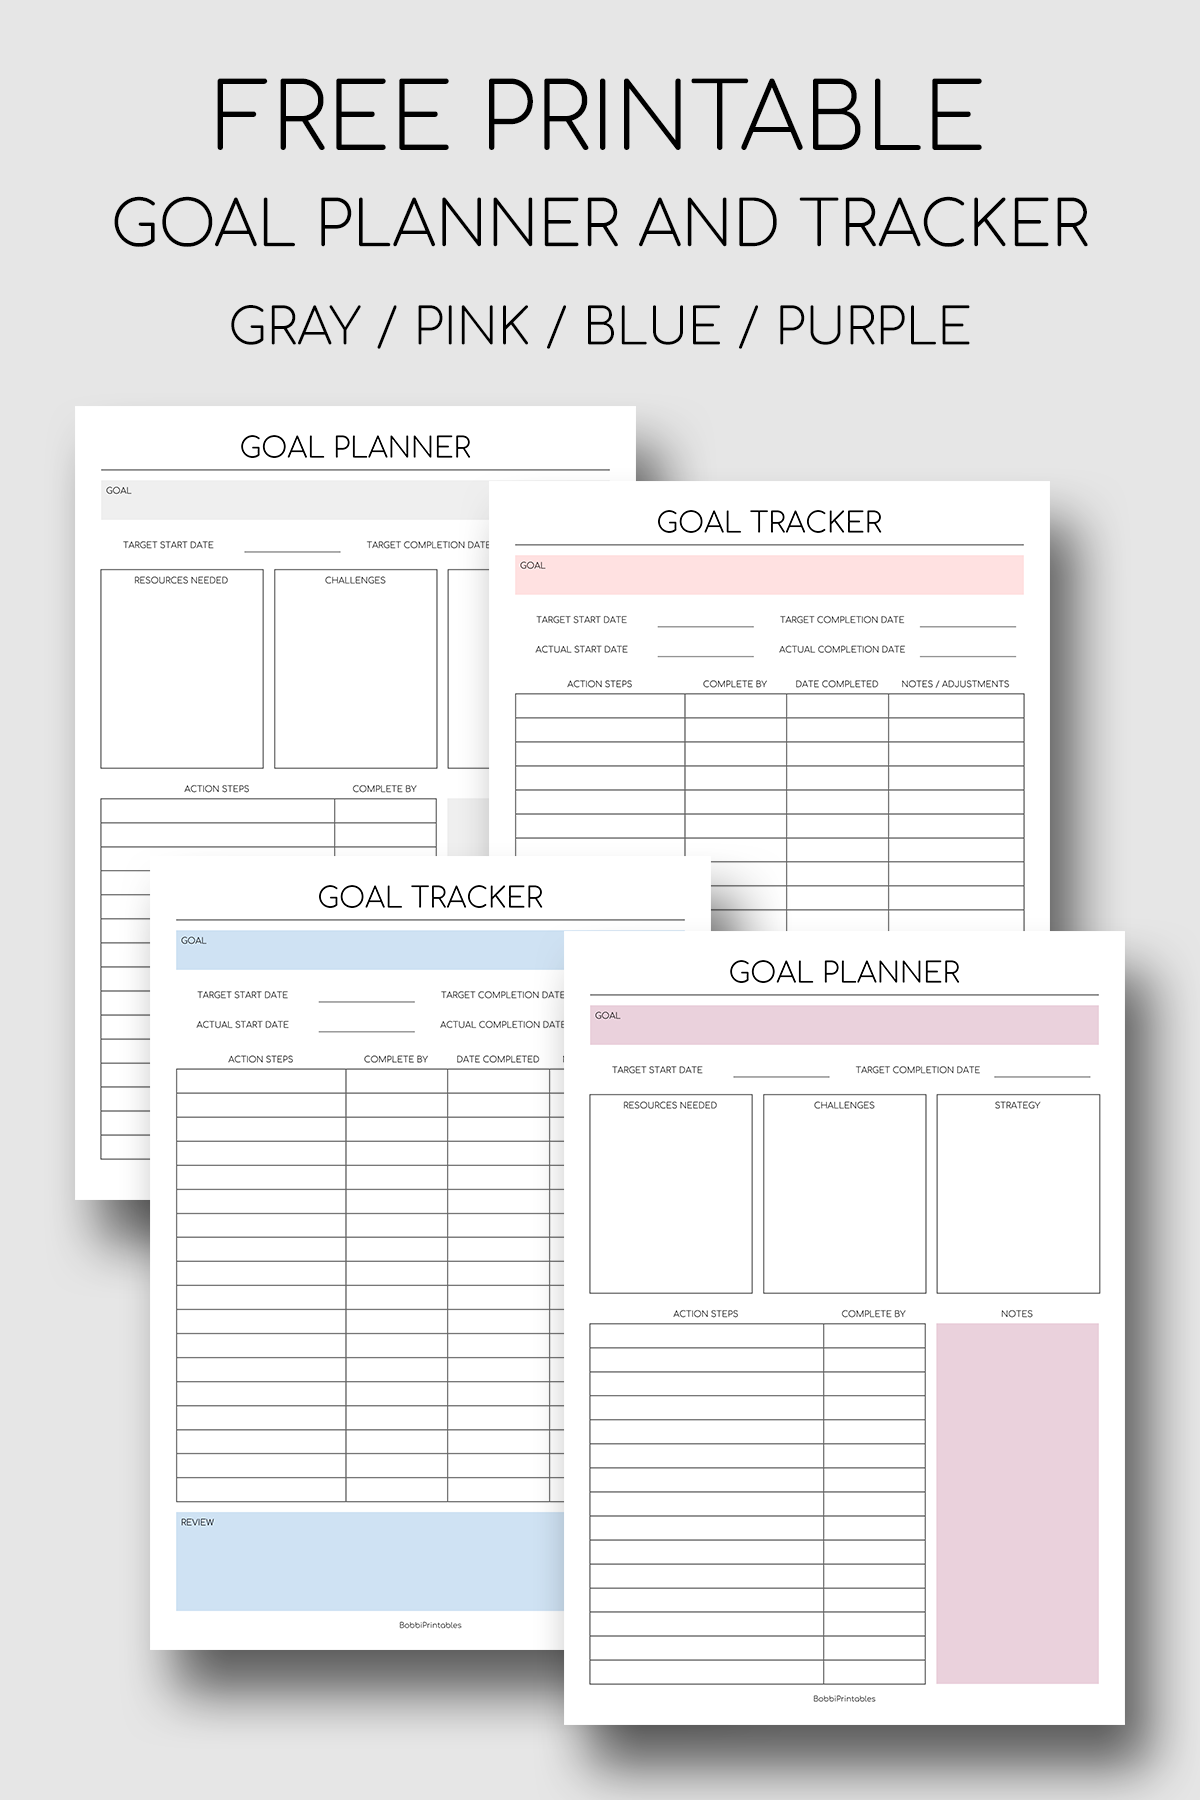 Printable Goal Planner And Goal Tracker In